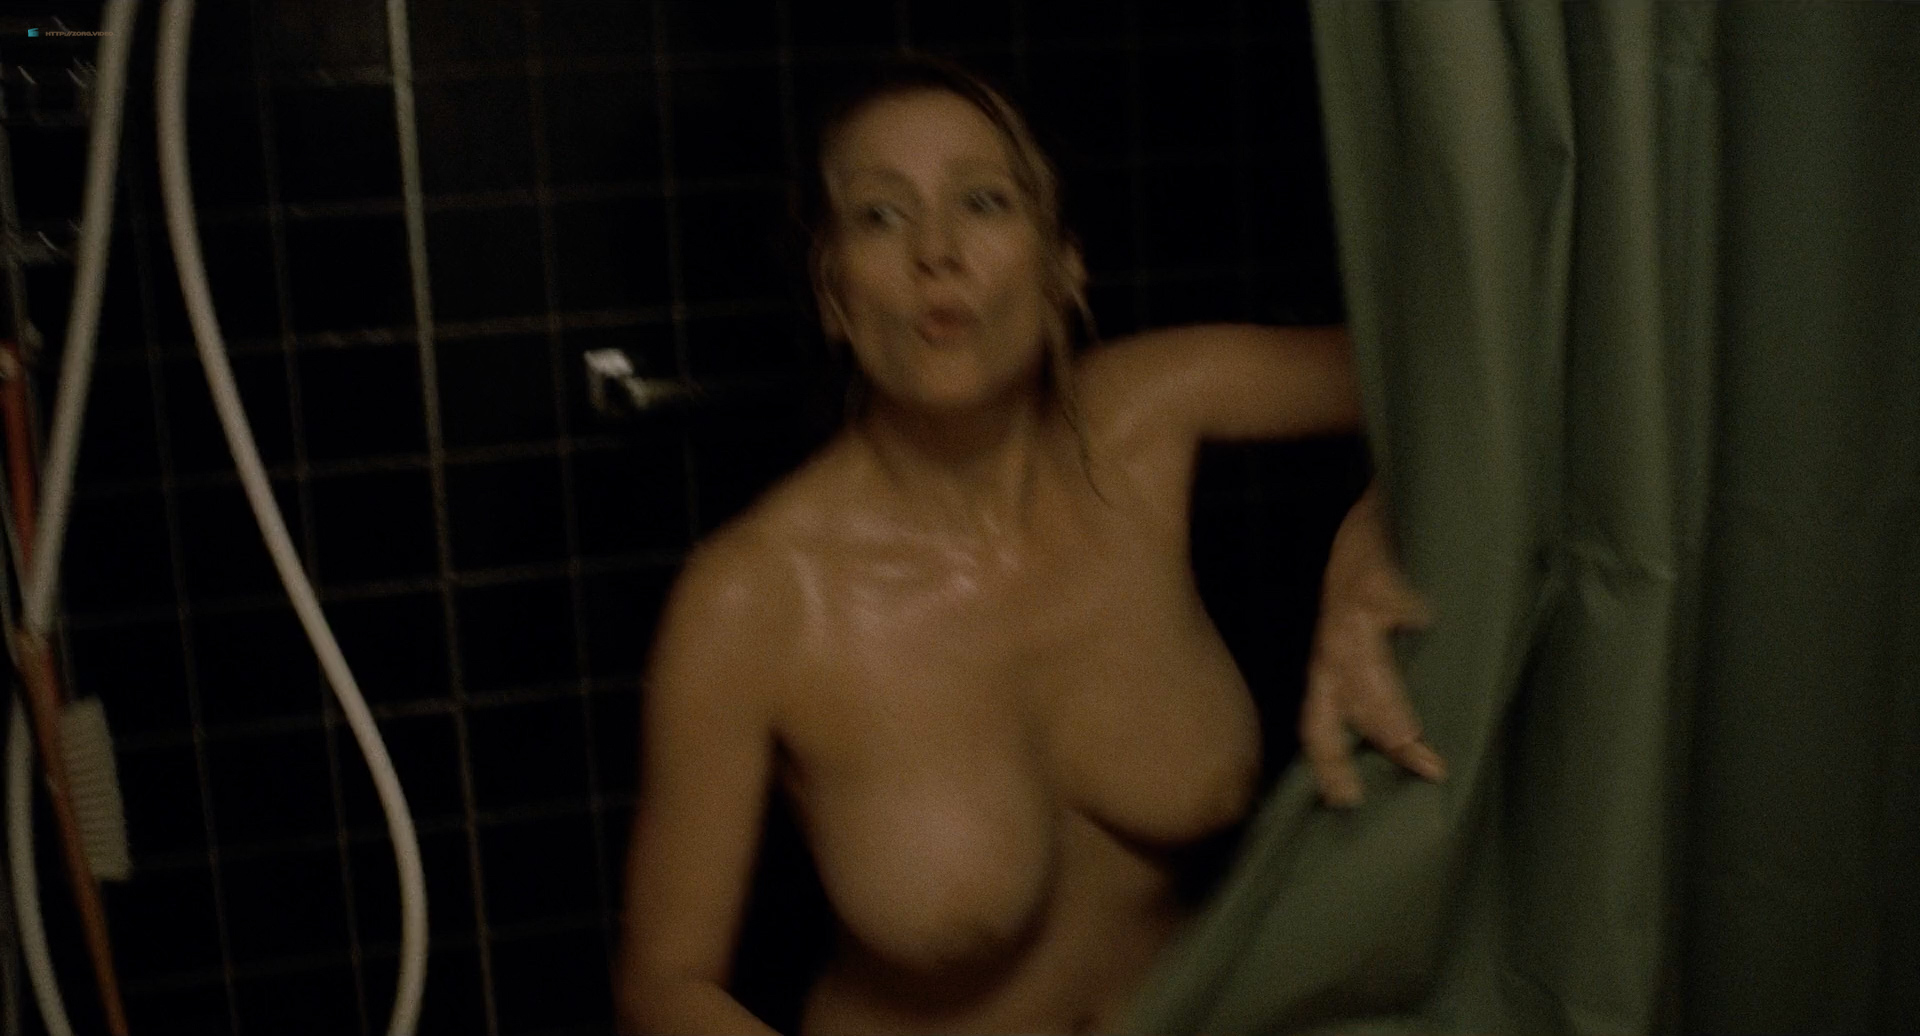 Hannah Britland Naked in paula morgan nude topless in the shower – closet monster (2015) hd